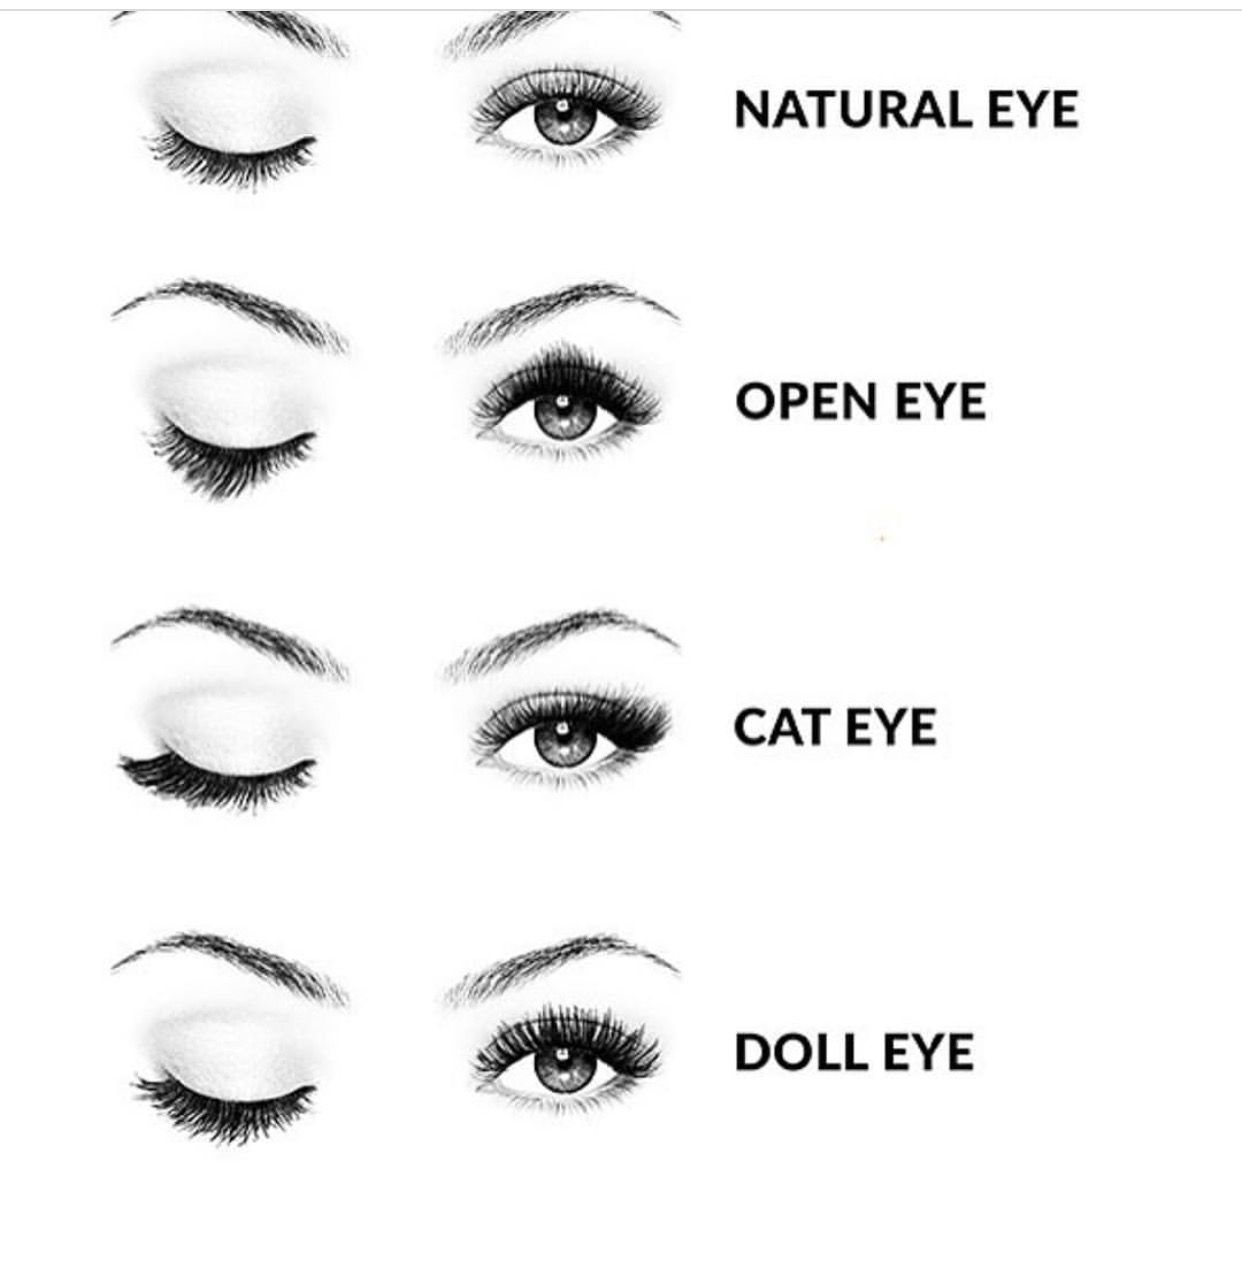 Diff style diagram of eyes illustration of wiring diagram makeup artist https pinterest com makeupartist4ever what rh pinterest com diagram of eye aqueous humor nose diagram ccuart Images